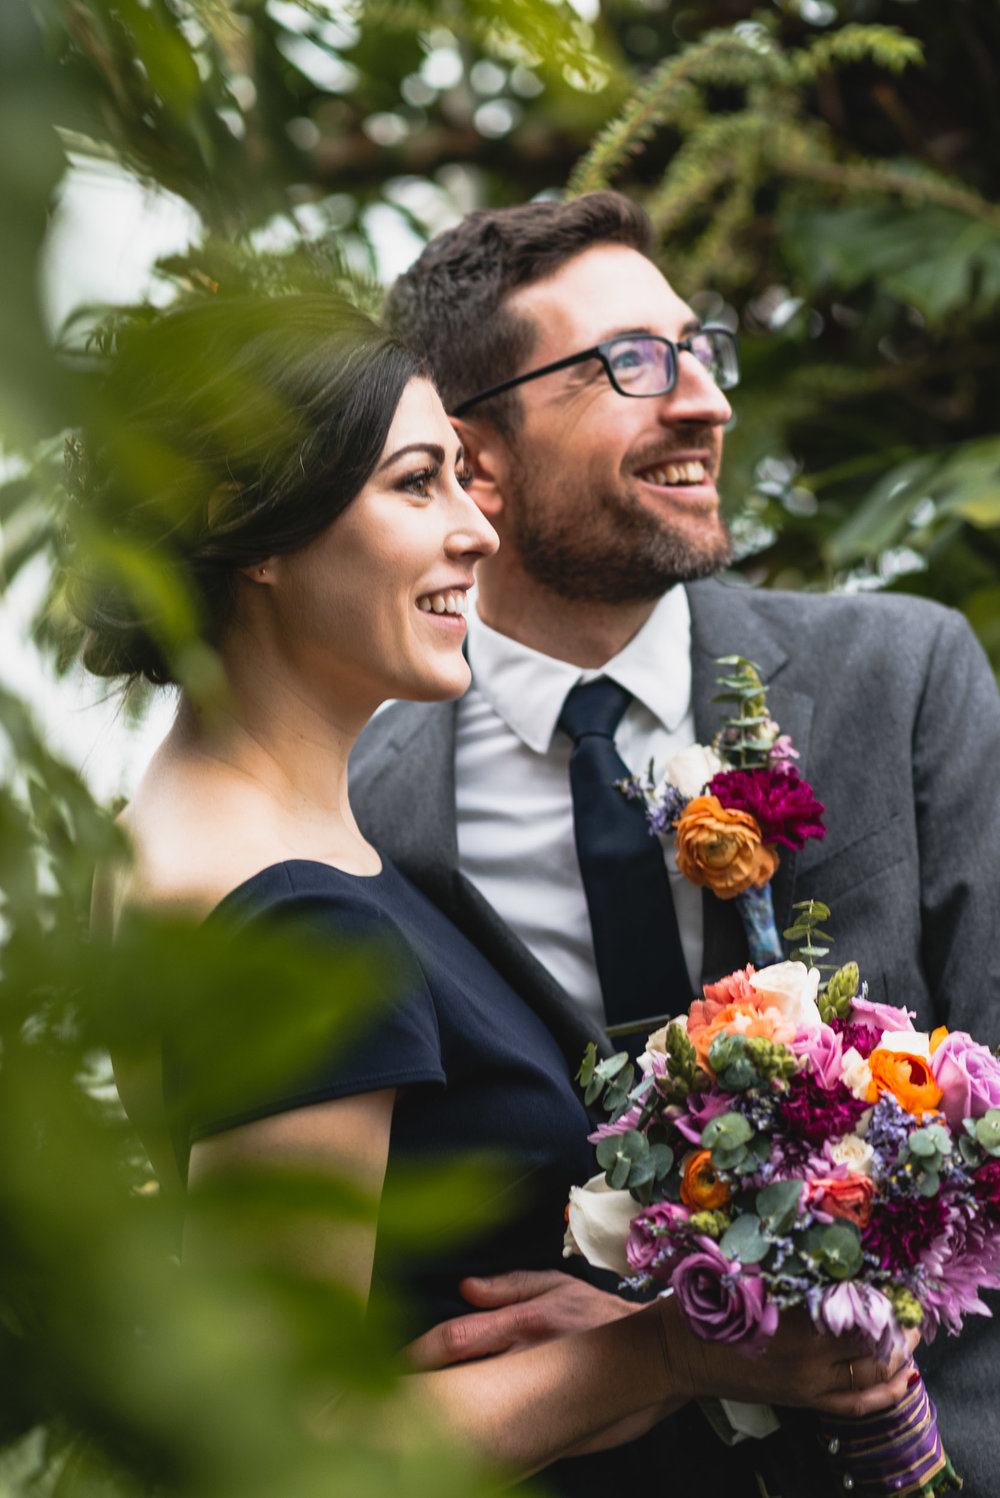 Bride and groom with plants